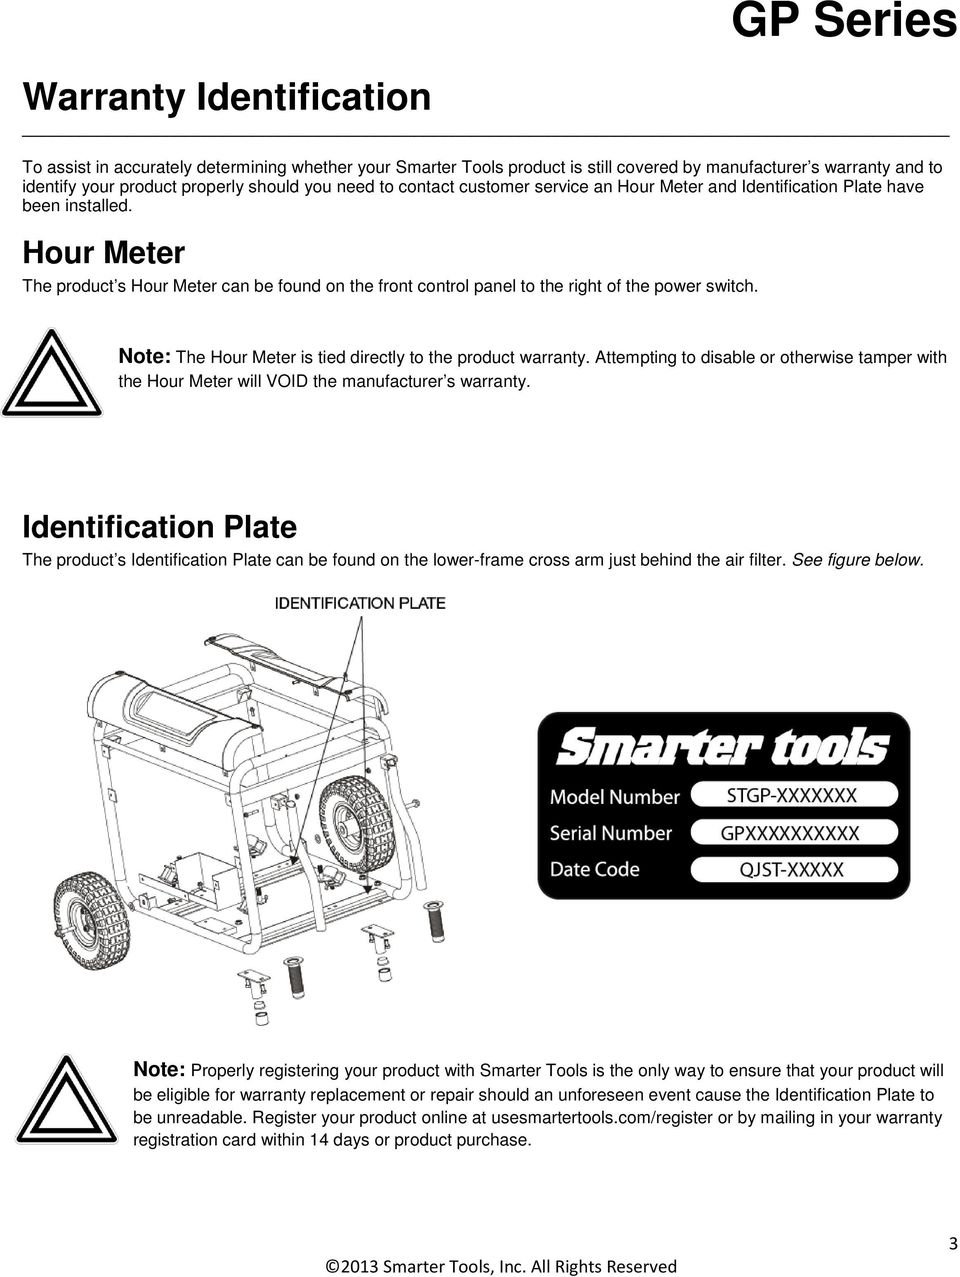 Note: The Hour Meter is tied directly to the product warranty. Attempting to disable or otherwise tamper with the Hour Meter will VOID the manufacturer s warranty.